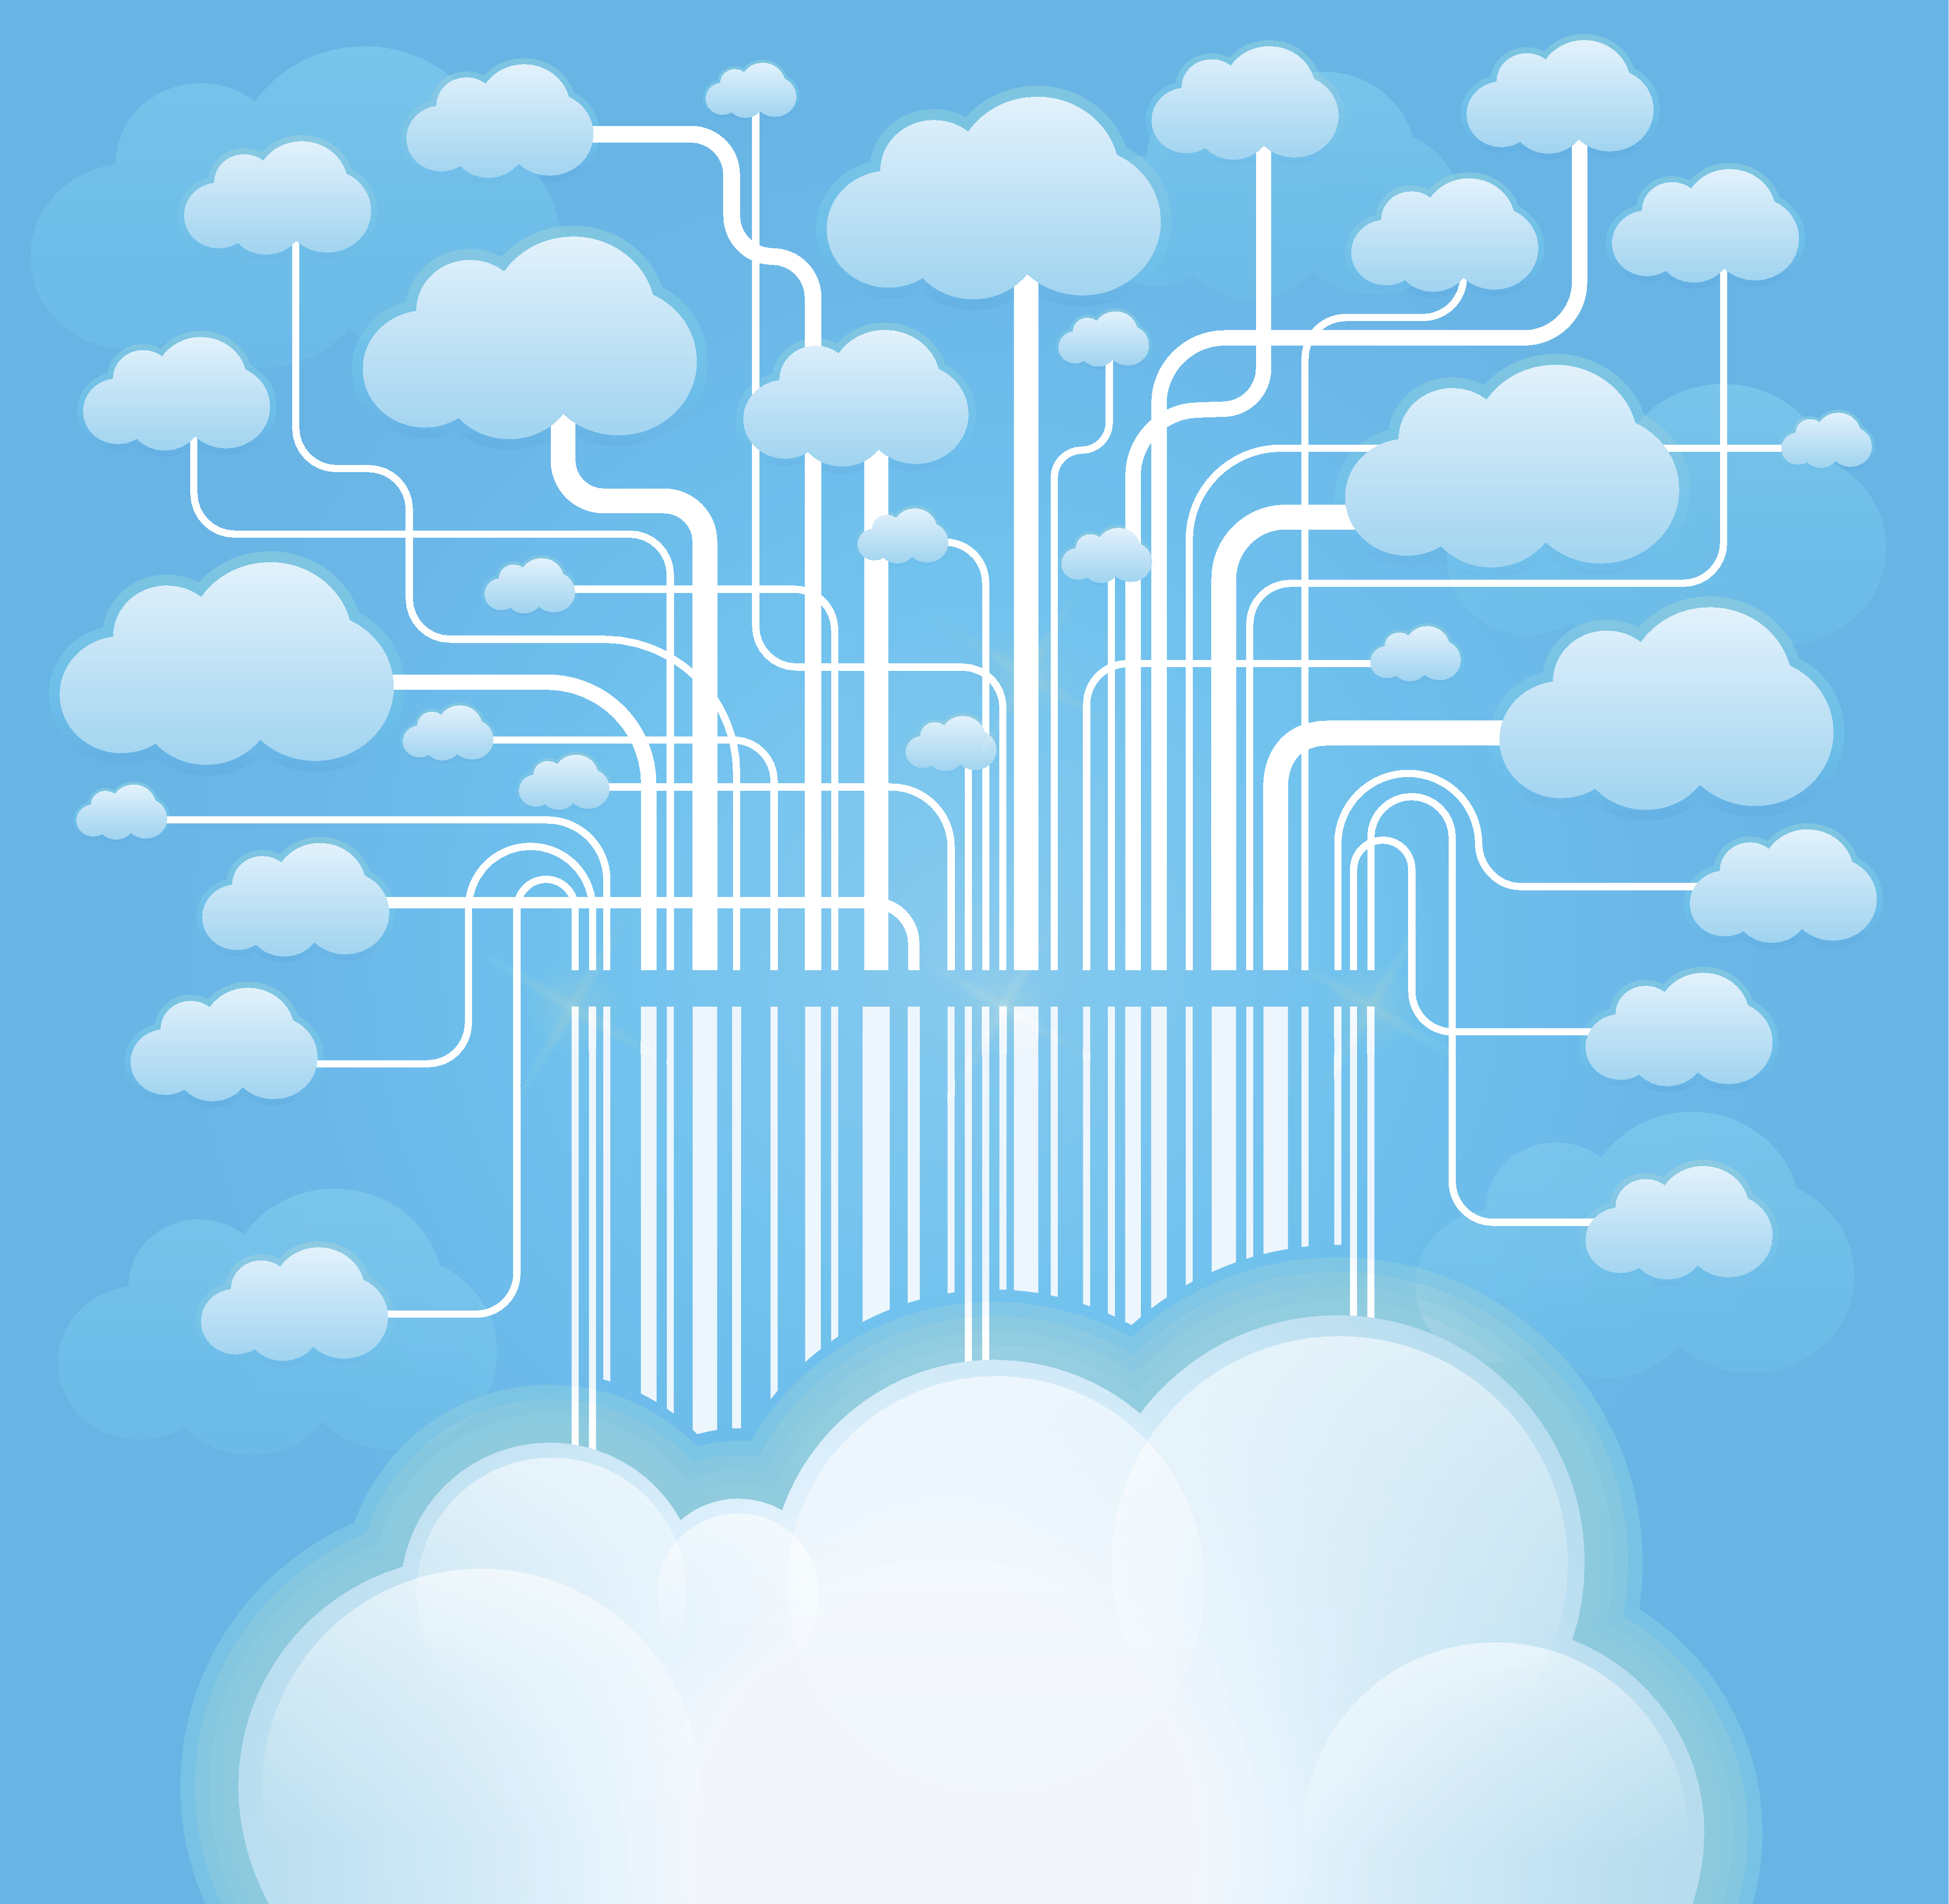 Letting customers decide who really leads in cloud